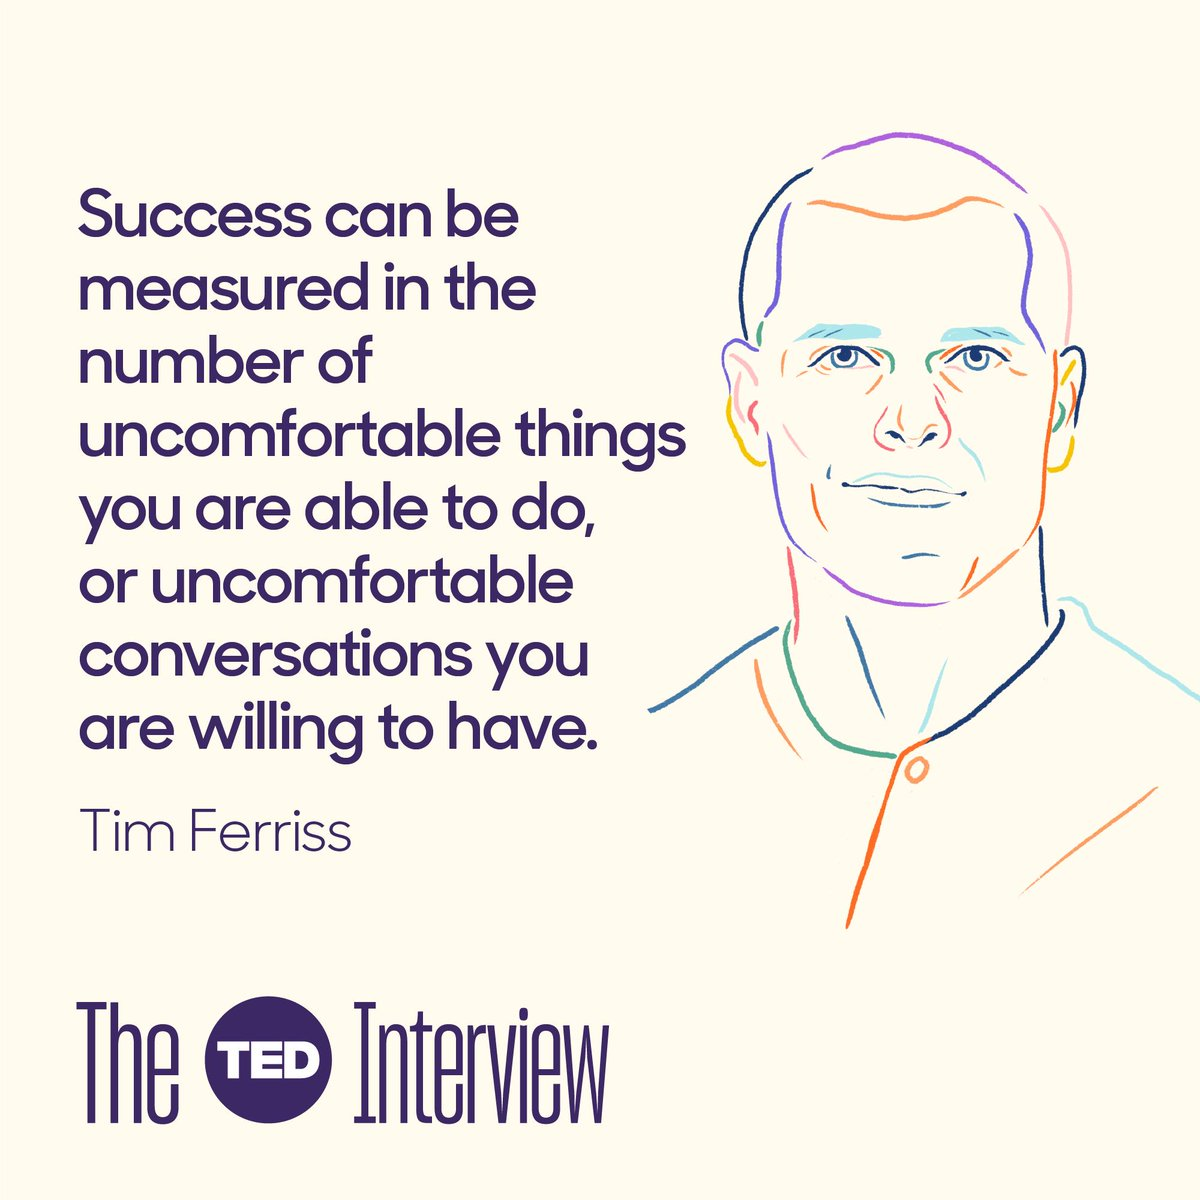 Exciting new episode of #TheTEDInterview just posted with none other than @tferriss. I pushed him hard on a couple of issues, and he responded so impressively. Much wisdom here... from stoicism to psychedelics. https://bit.ly/2JRTk5w